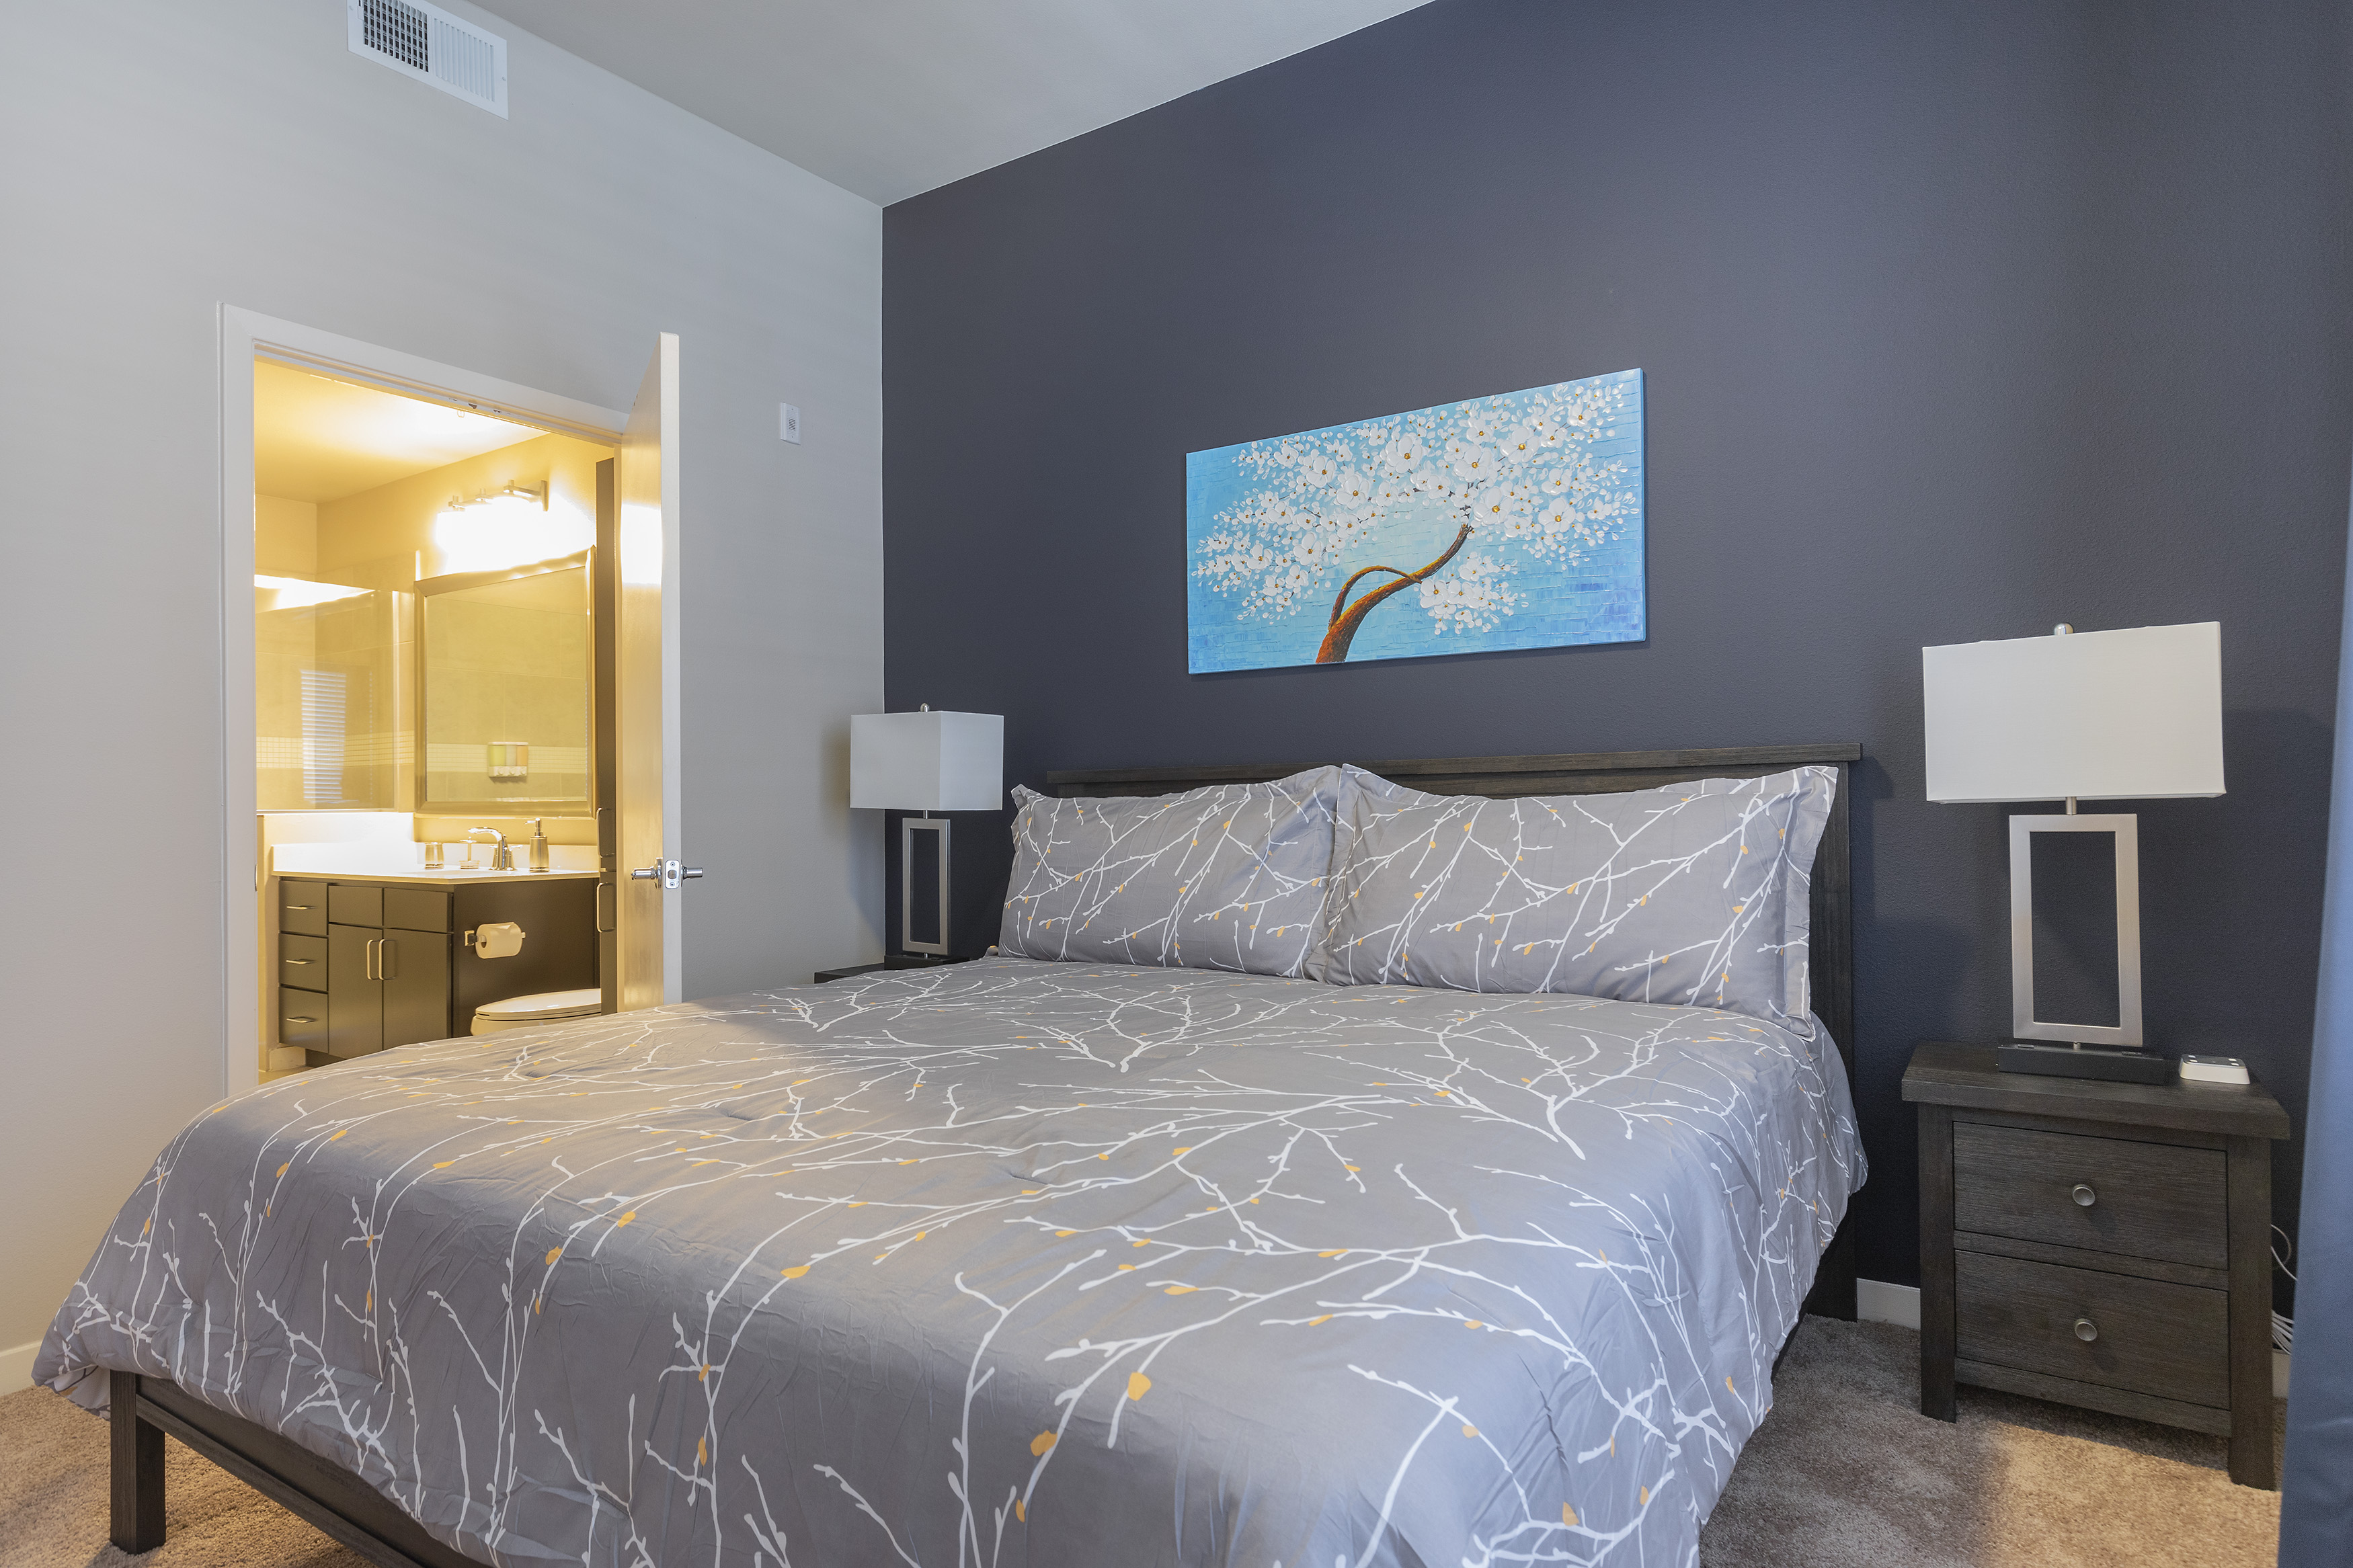 Apartment KING SIZE BED LUXURIOUS MED CENTER FULLY EQUIPPED CONDO photo 21441099